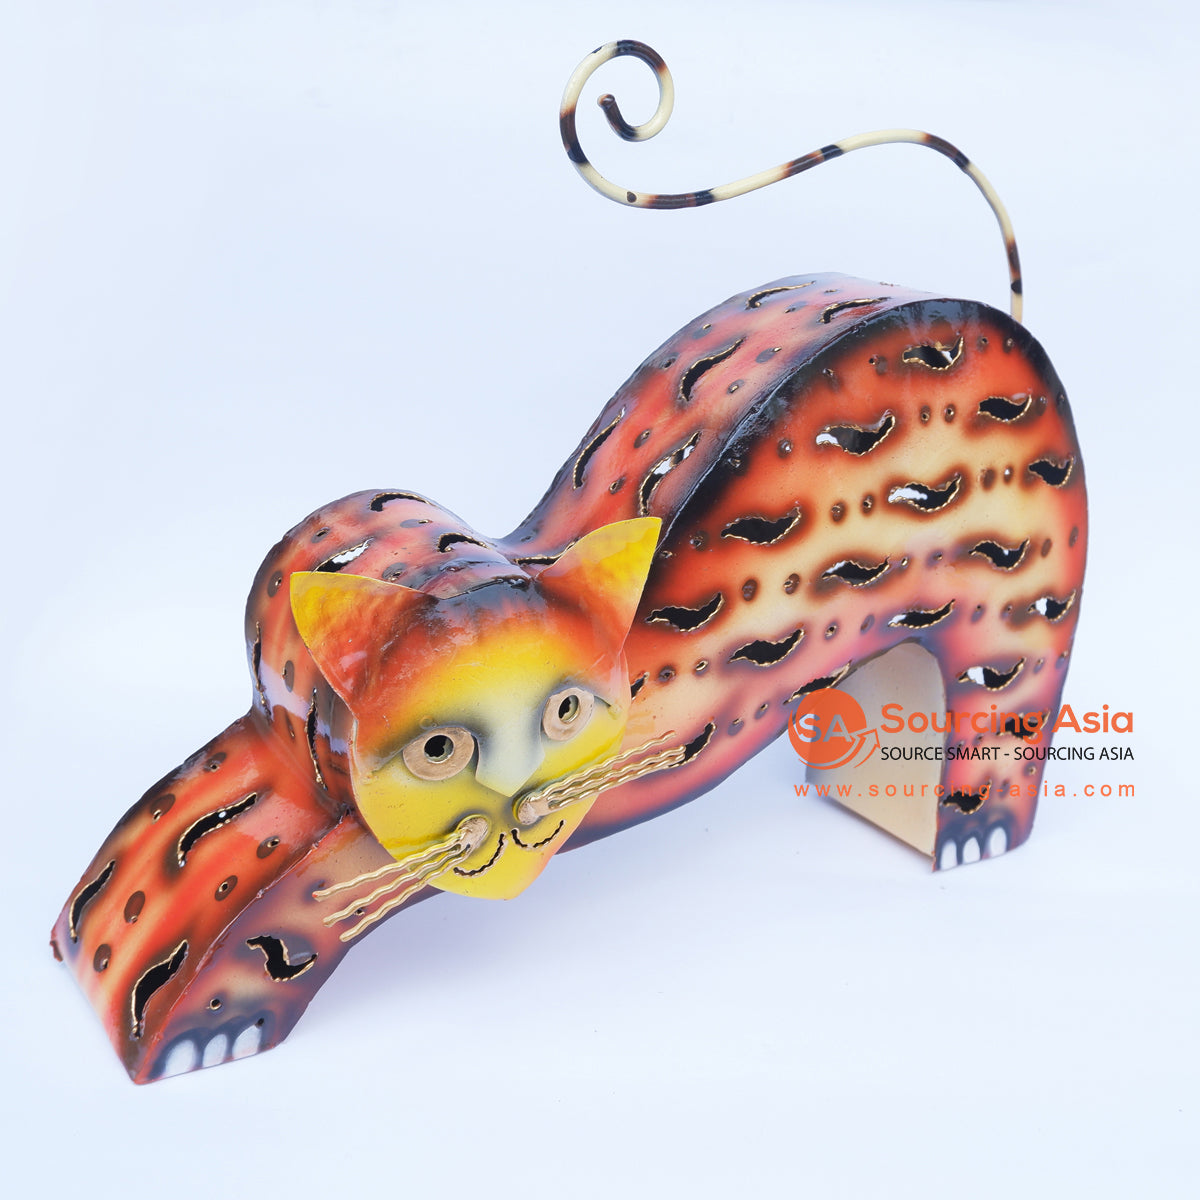 PEBC157 AIRBRUSHED PAINTED METAL CAT DECORATION